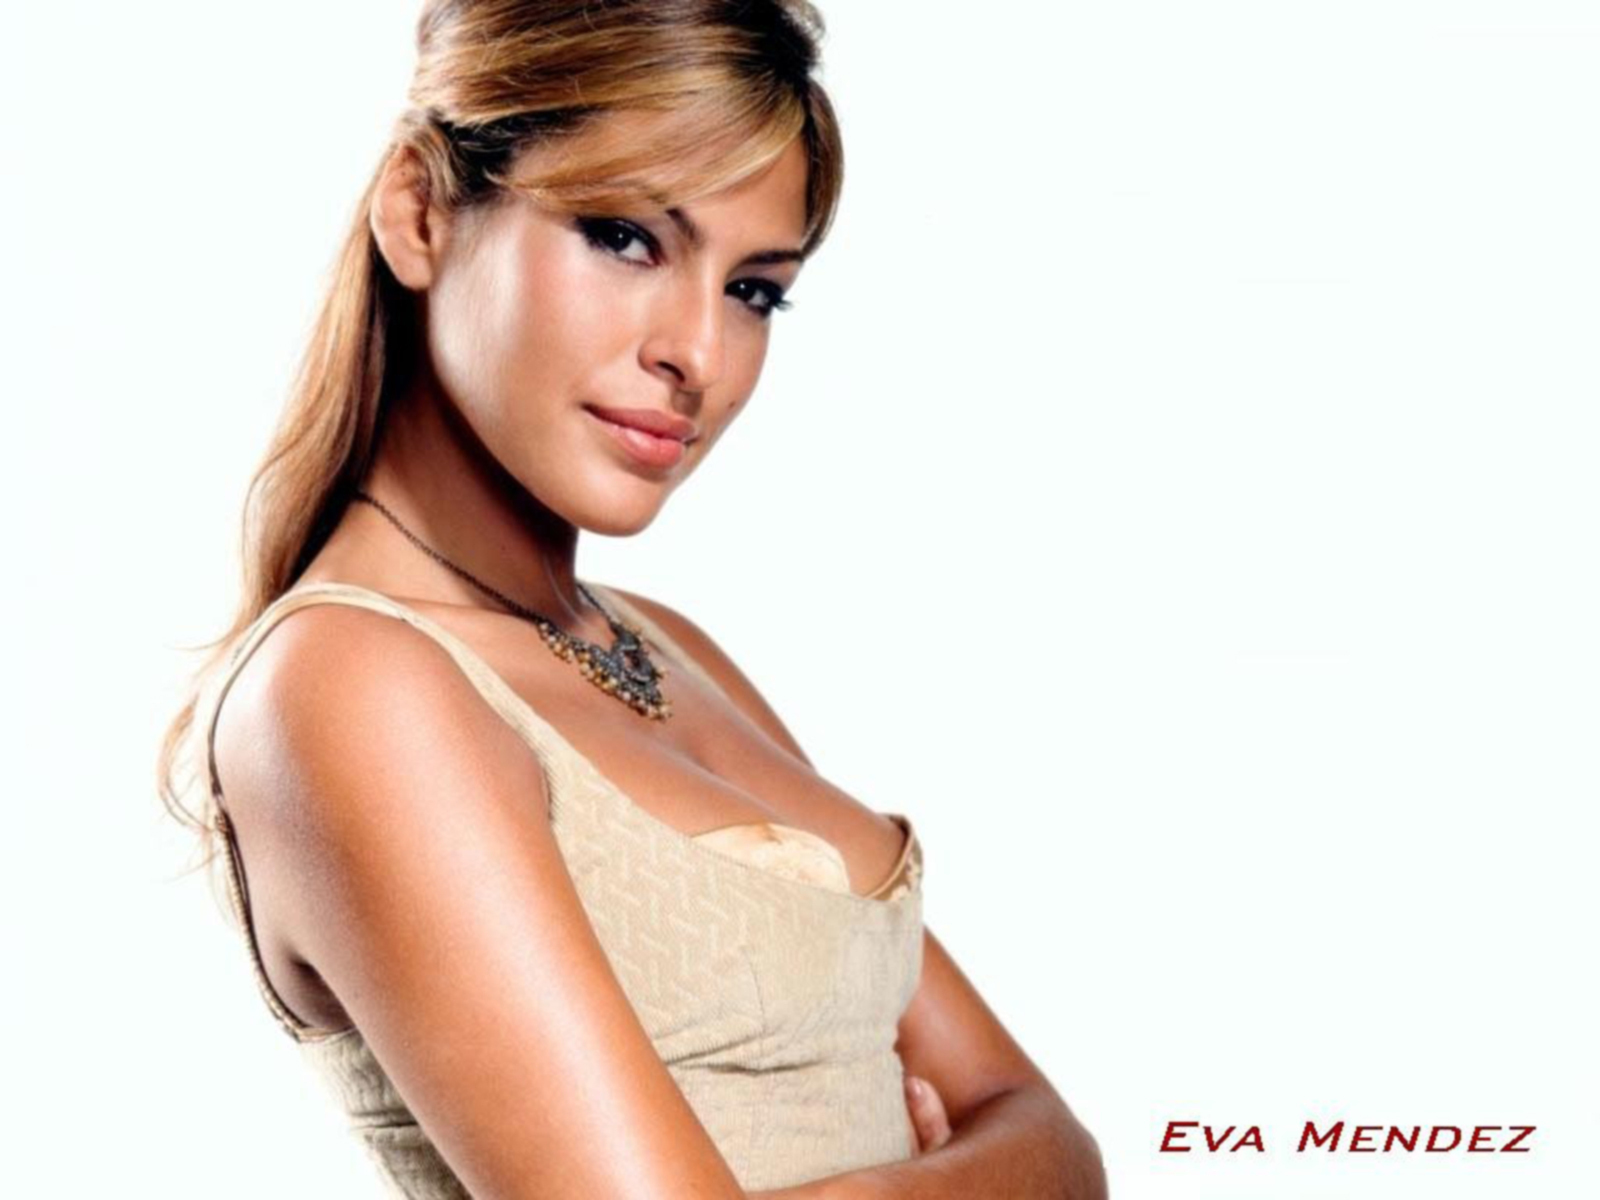 Eva Net Worth